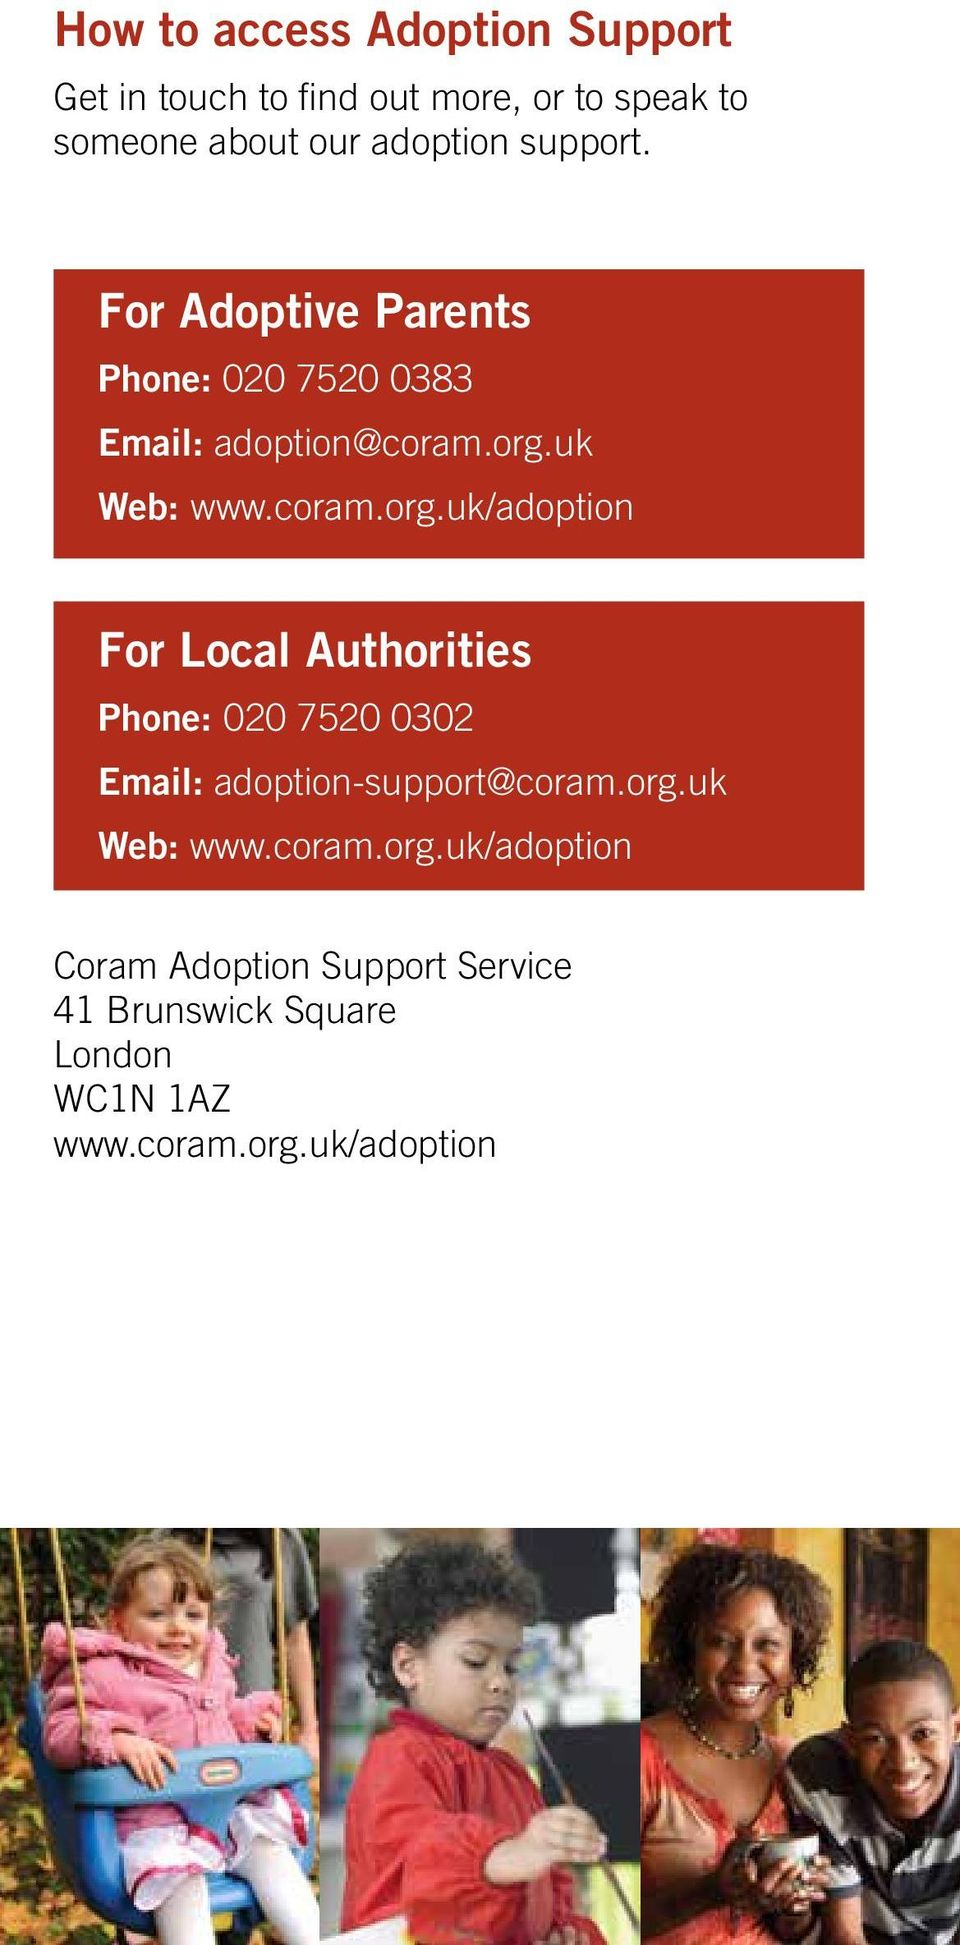 uk Web: www.coram.org.